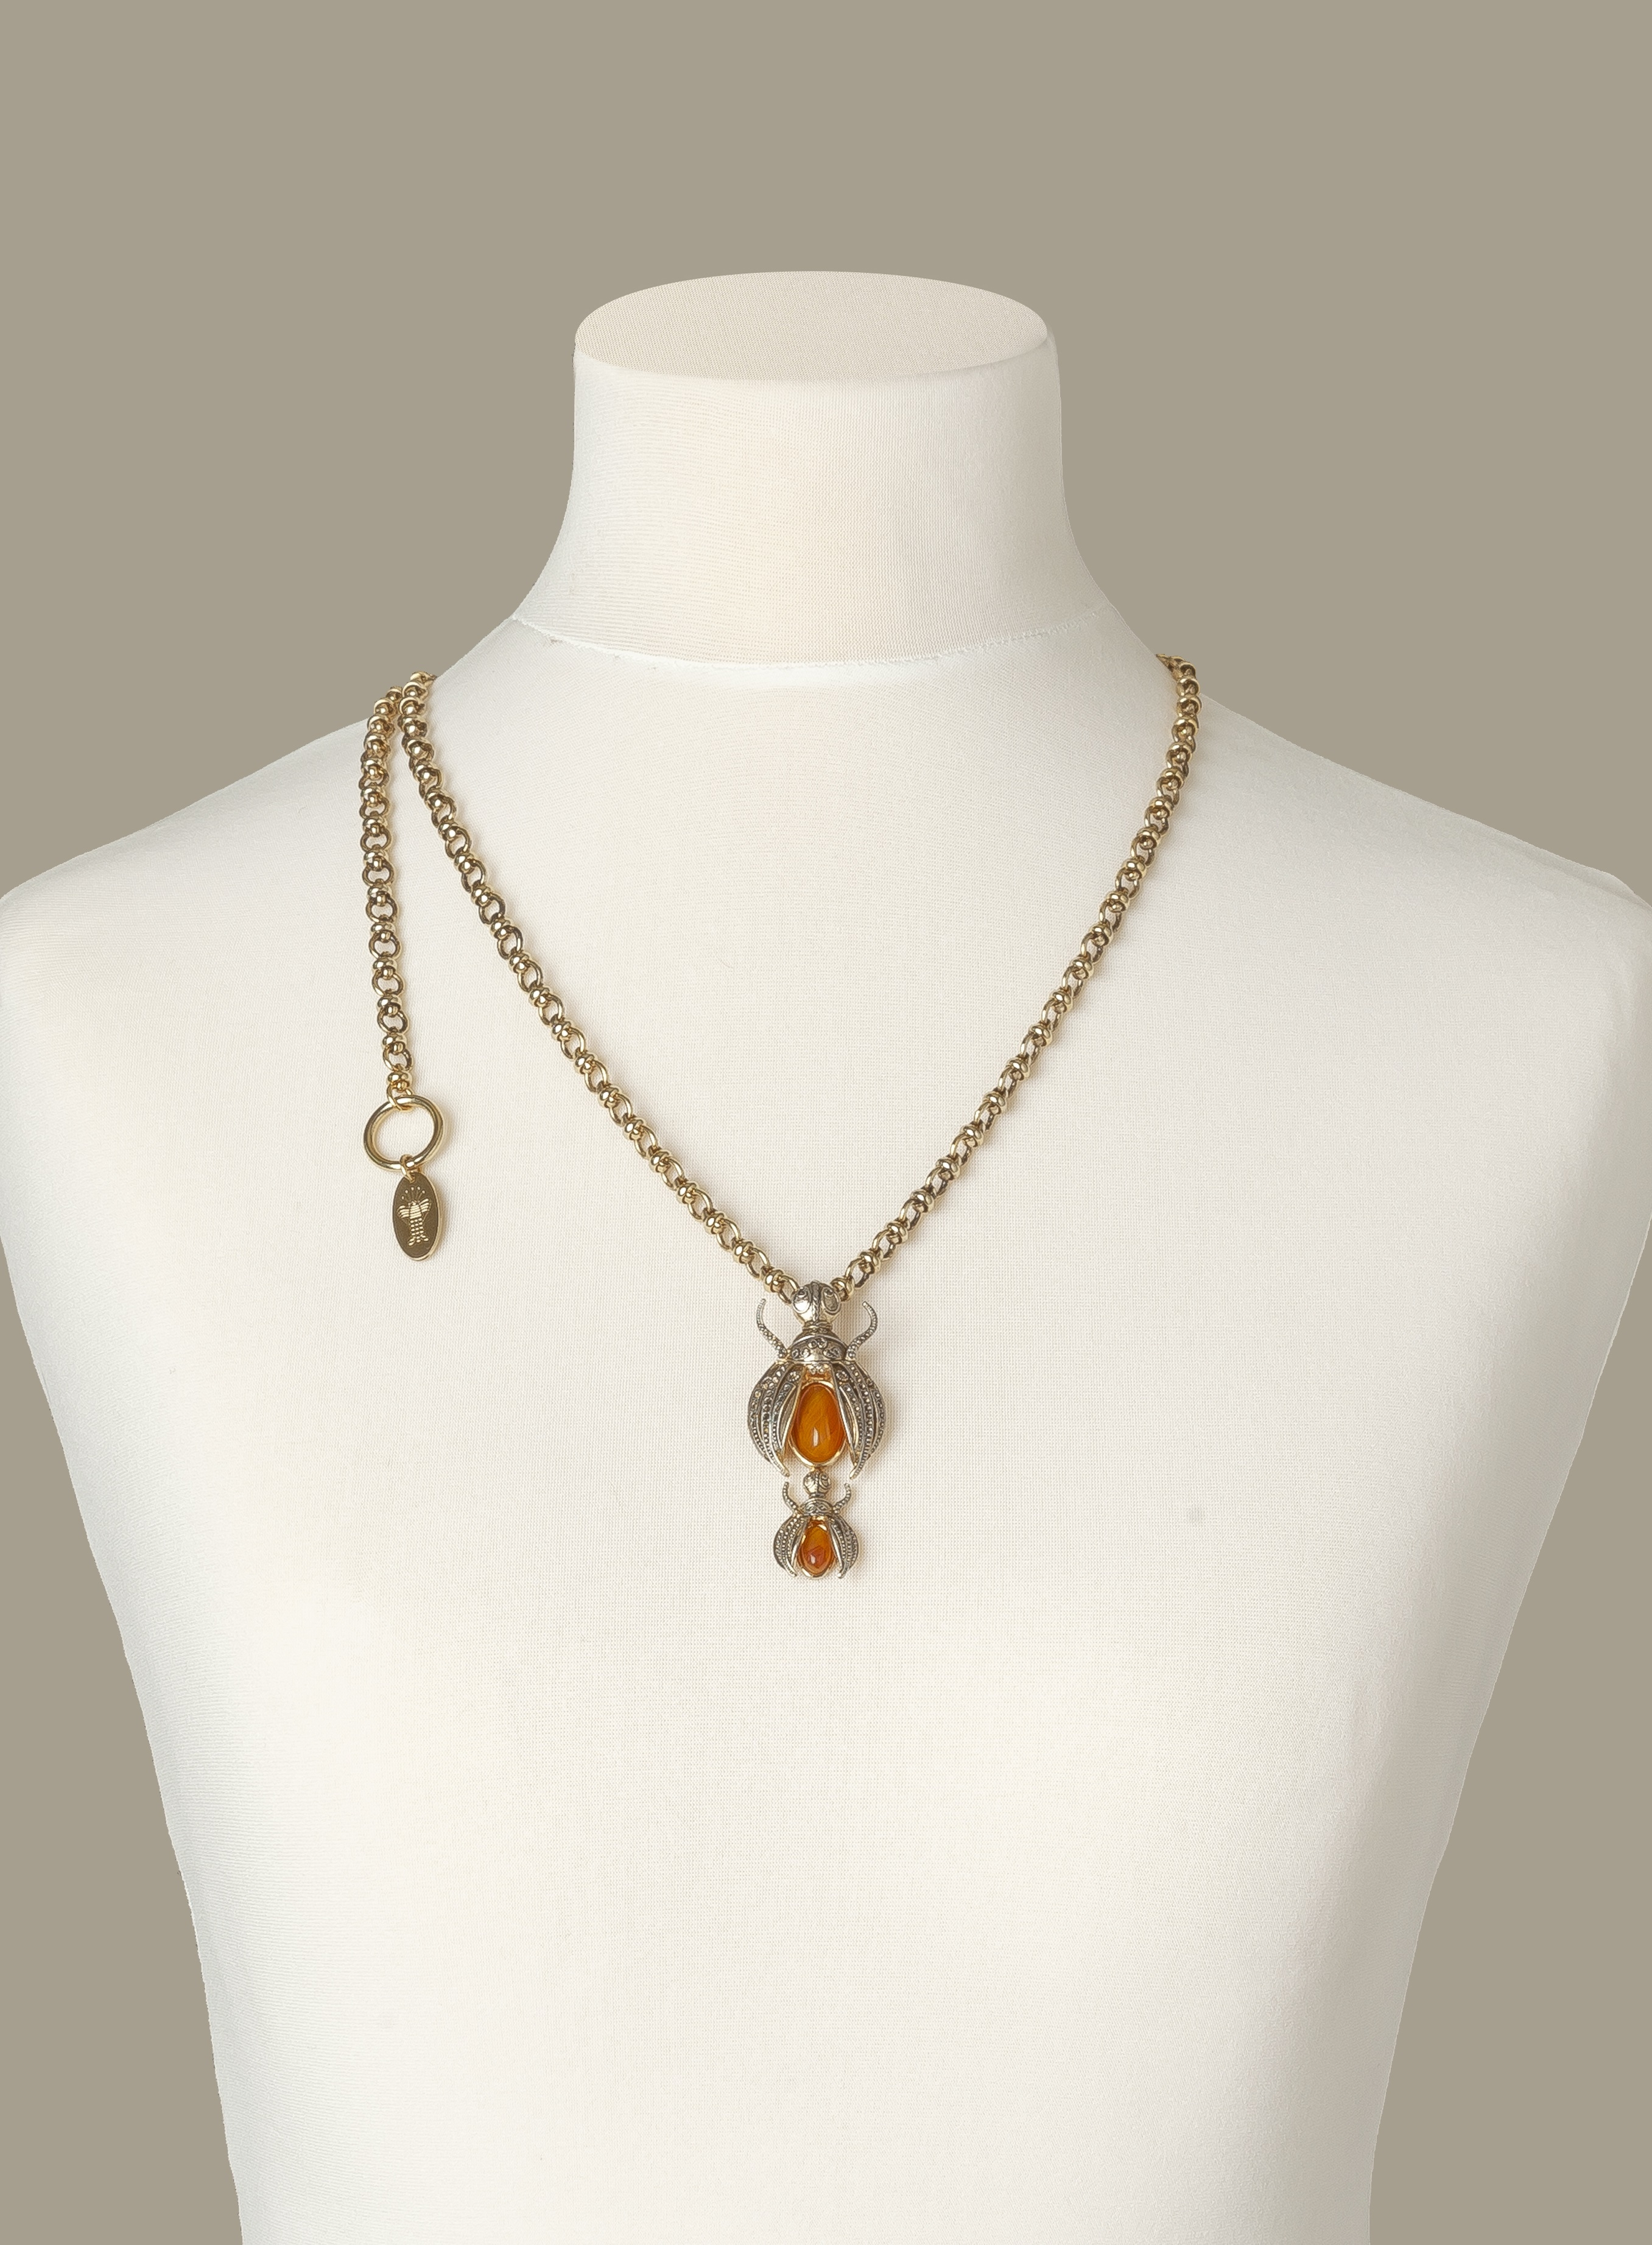 Gold Scarab Luxury Necklace by Sonia Petroff on curated-crowd.com